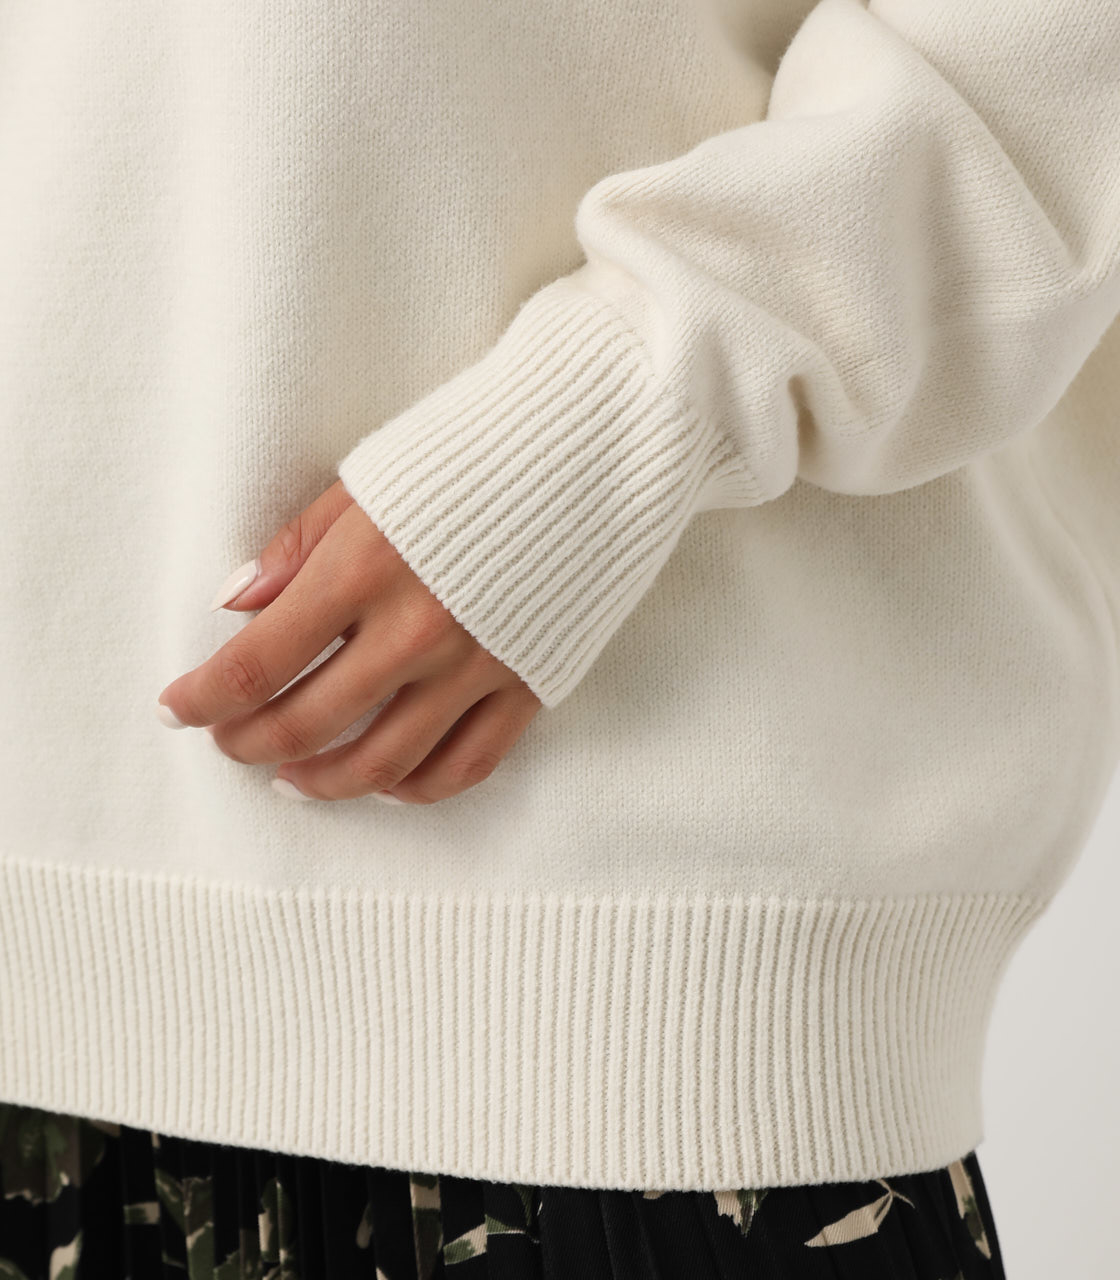 2WAY KNIT SET TOPS/2WAYニットセットトップス【MOOK#51掲載 90201】 詳細画像 O/WHT 9